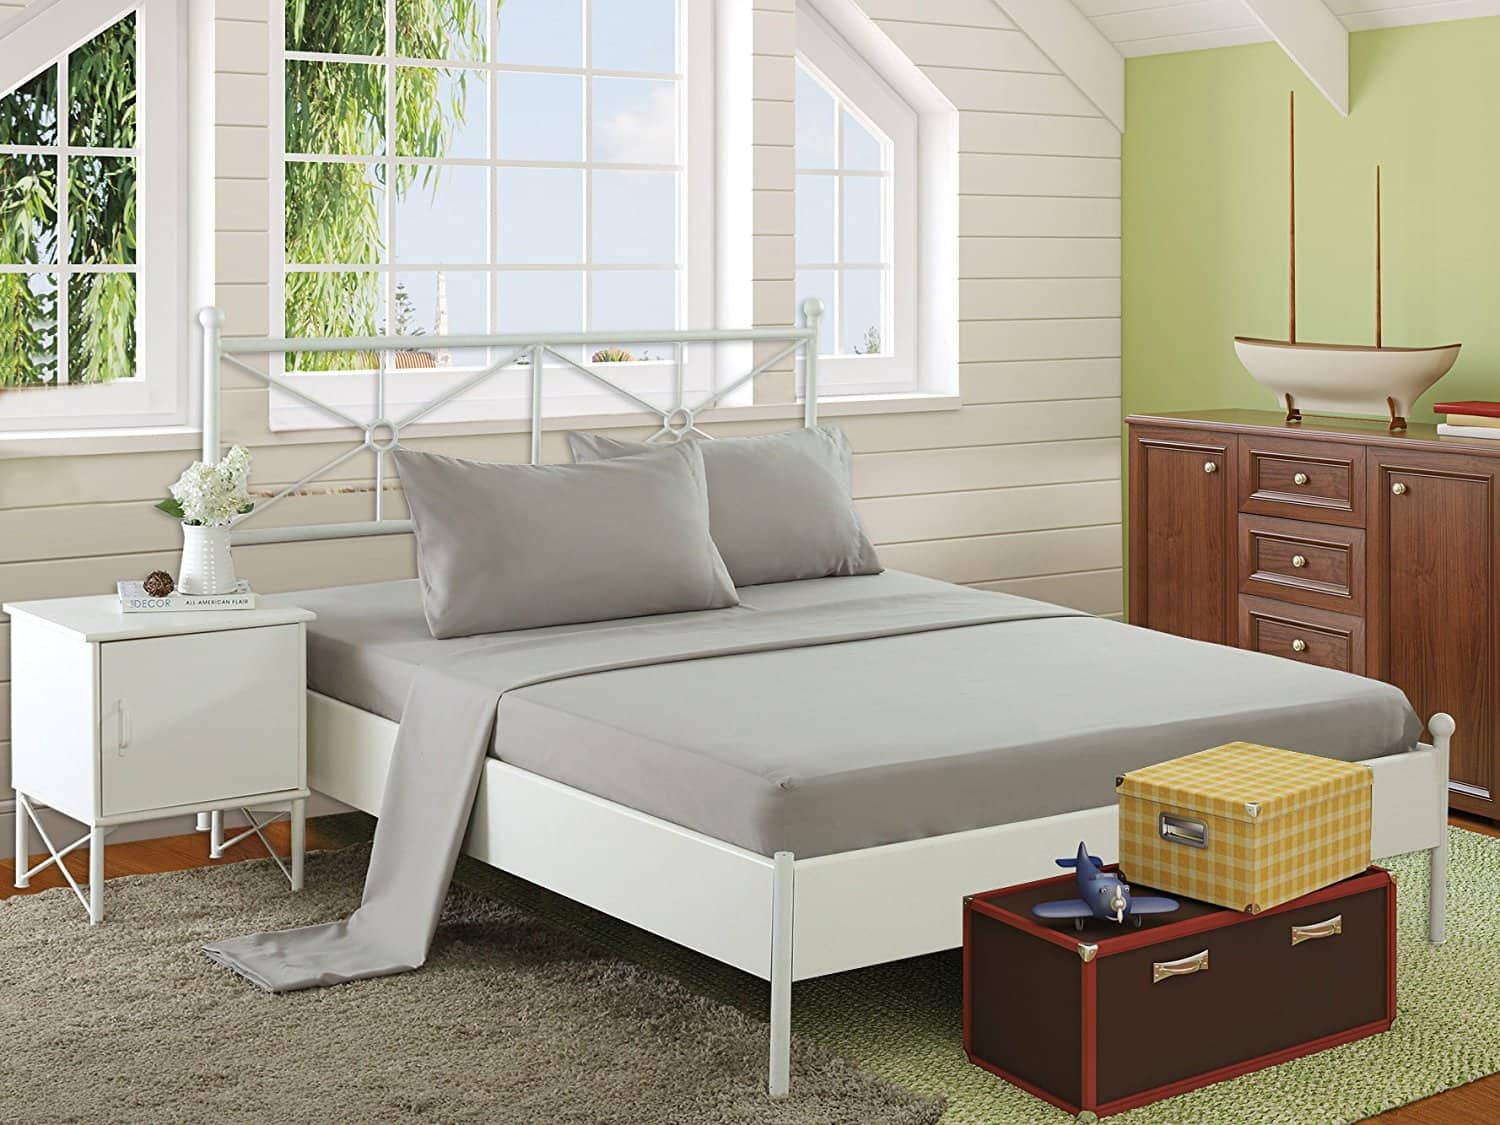 HollyHOME Hypoallergenic Brushed Microfiber Bed Sheet Set in Twin/Full/Queen $12-$12.60 @ AMZ